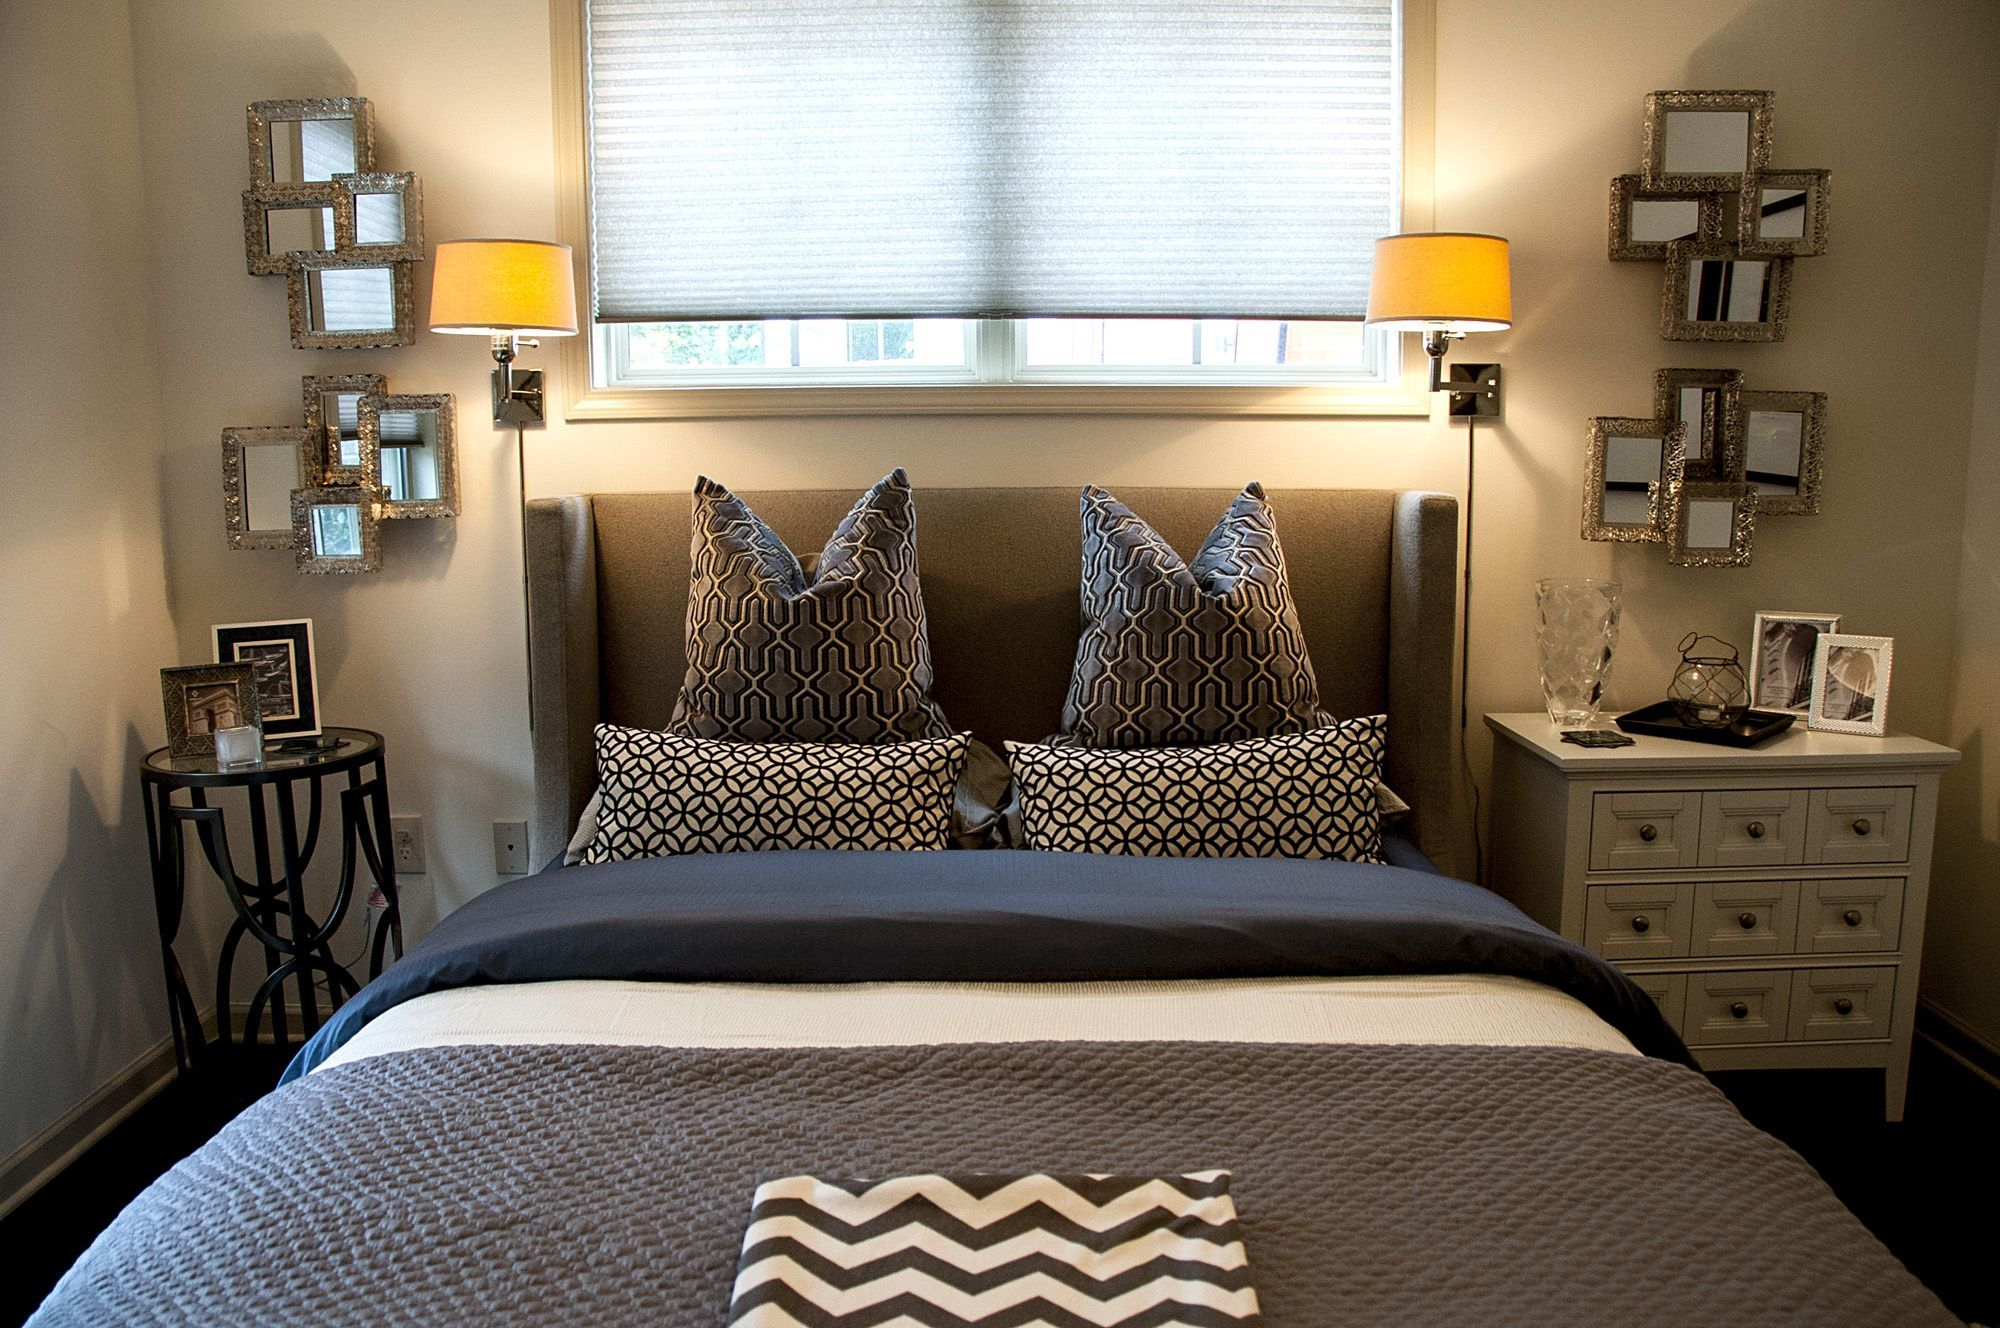 Master bedroom with 2 beds  Contemporary  Bedroom  Images by  Gays u A Design  Wayfair